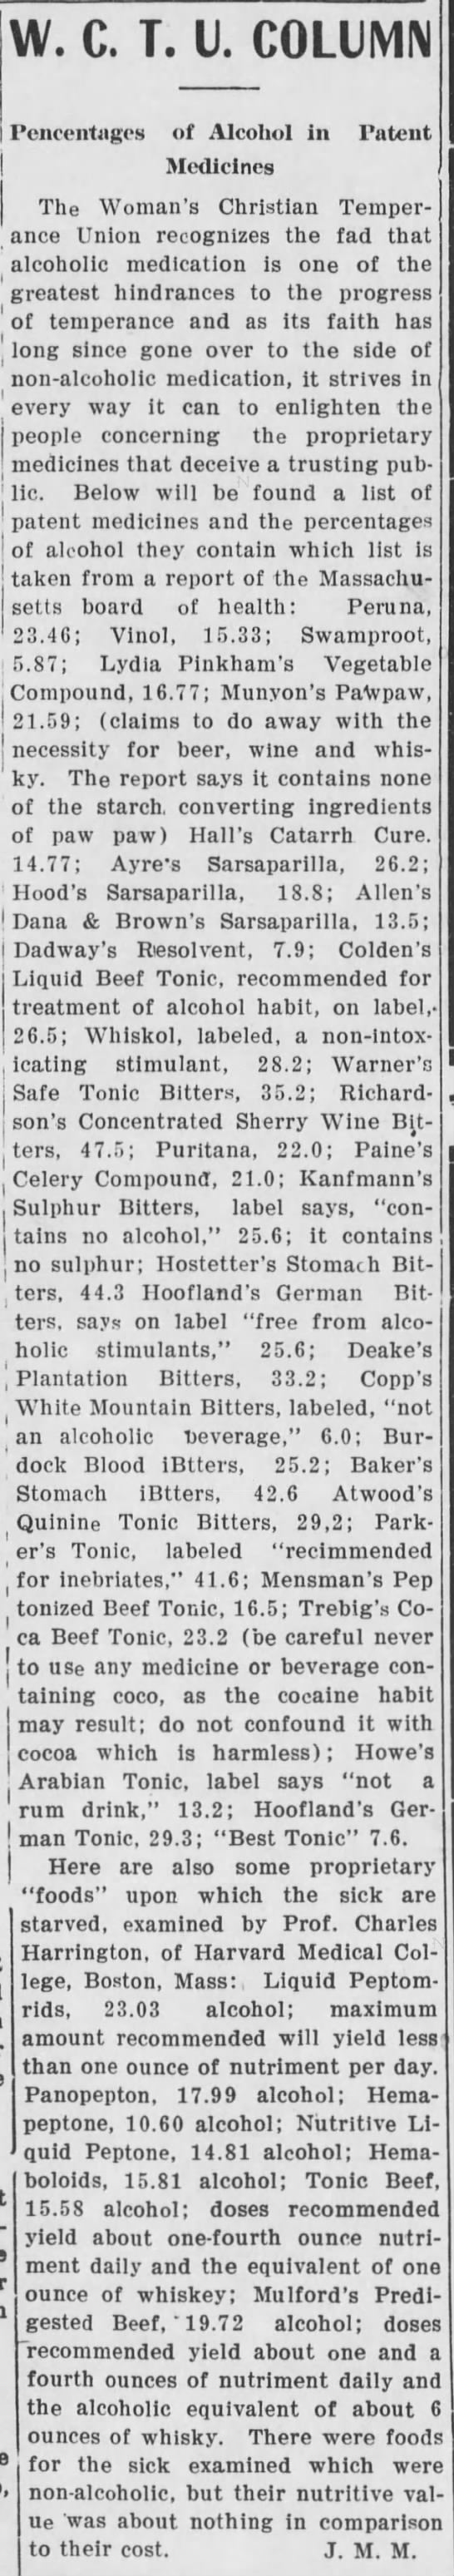 Percentages of Alcohol - Deadwood Pioneer-Times (Deadwood, SD) - 16 Nov 1907 -